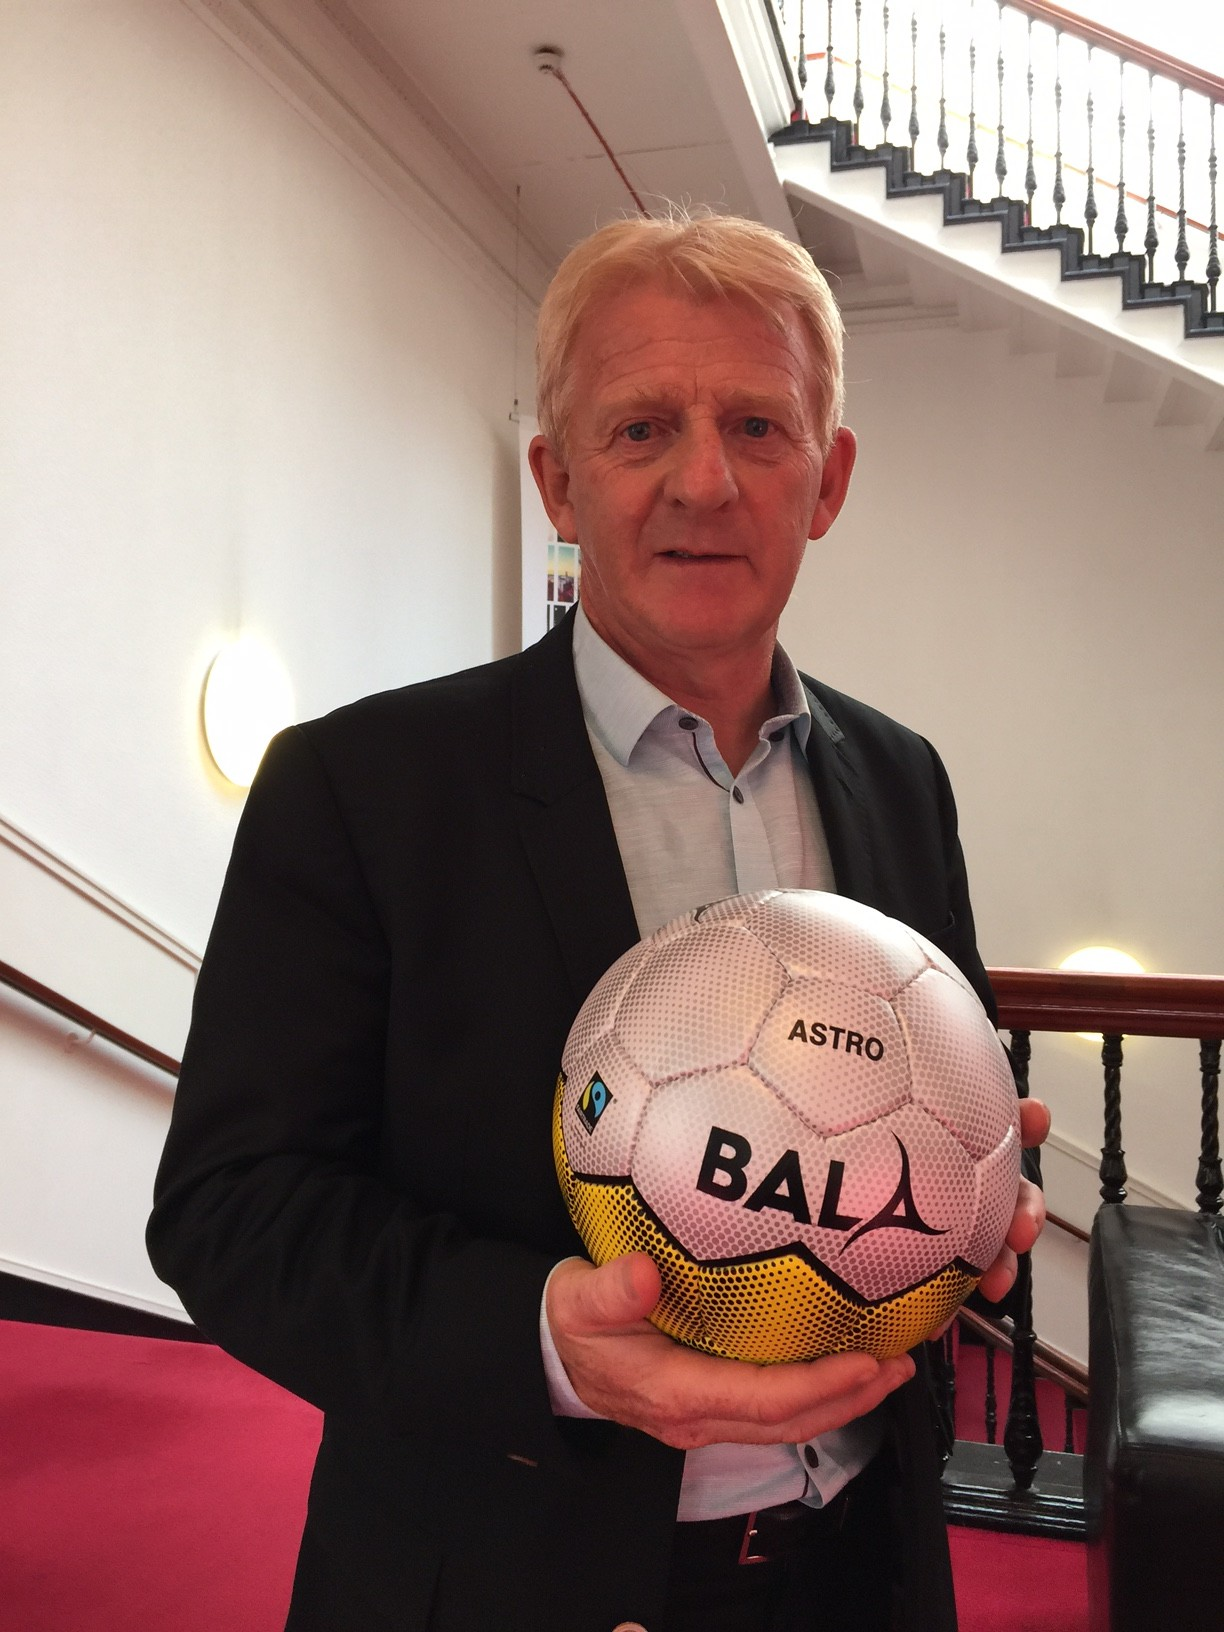 Gordon Strachan with Bala Astro